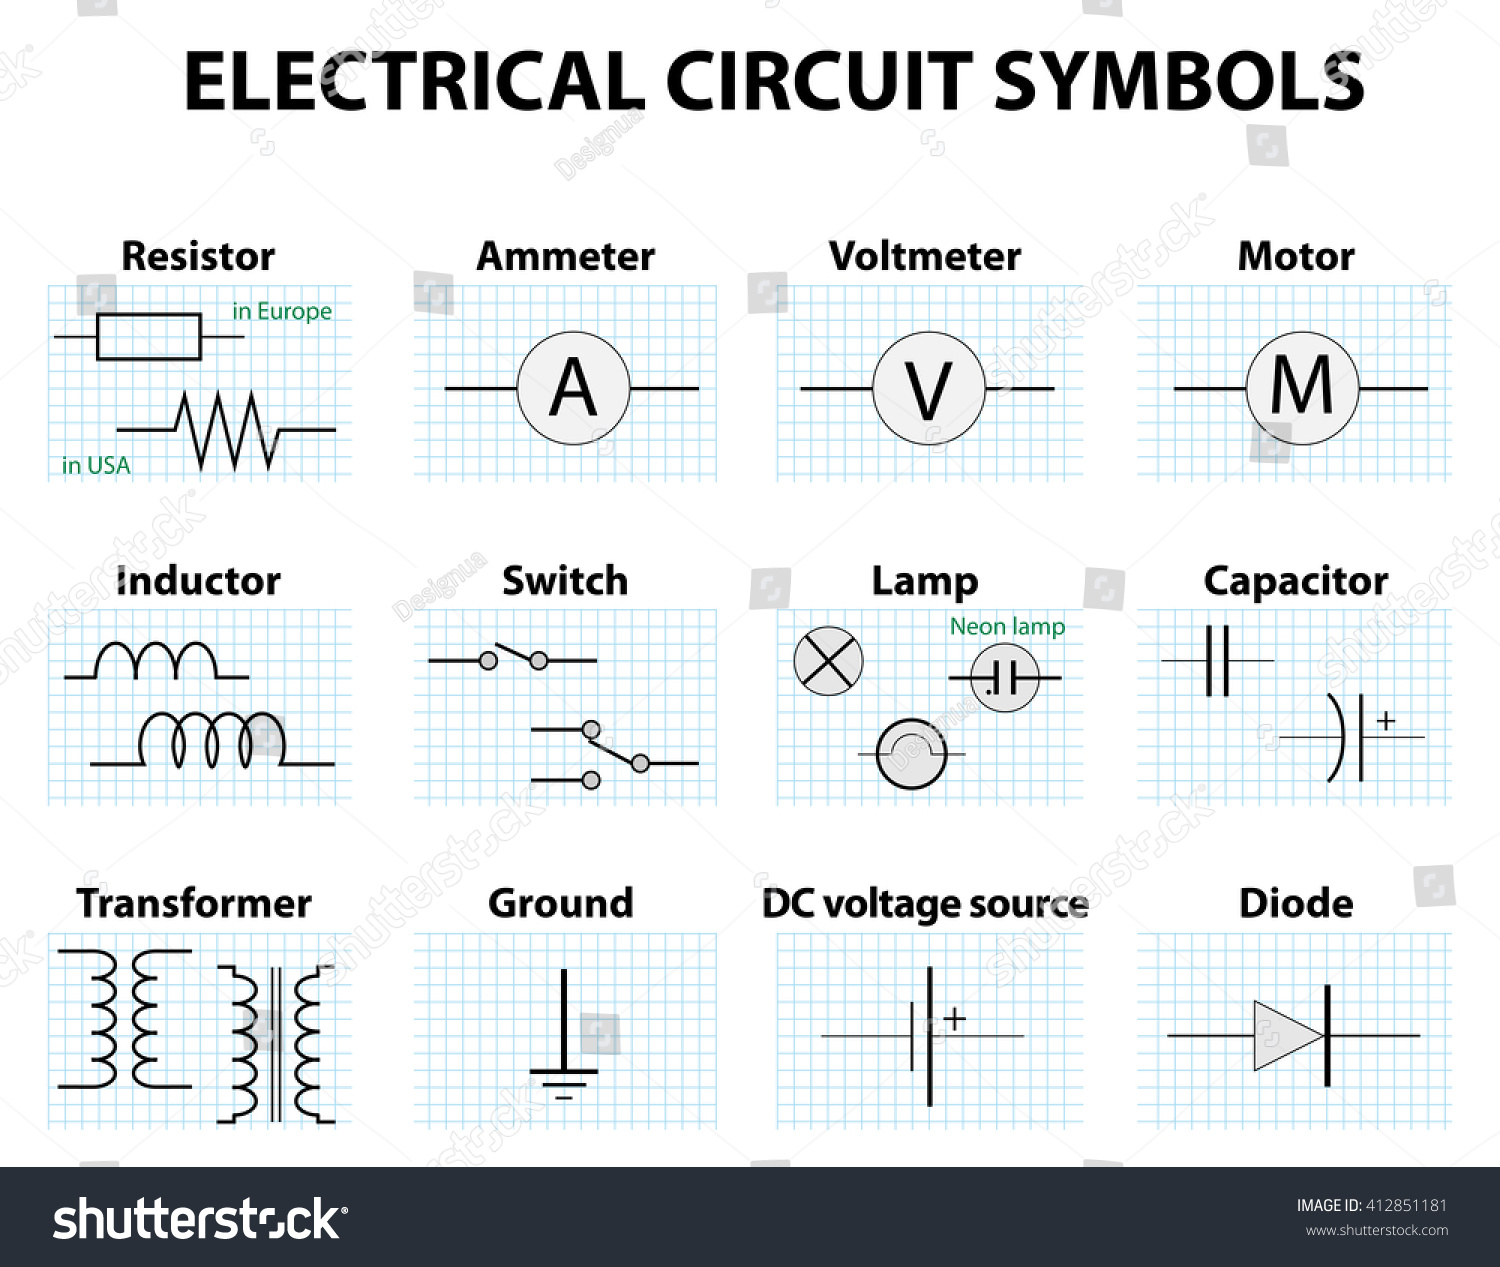 Electronic Symbol Pictogram Used Represent Electrical Stock ...